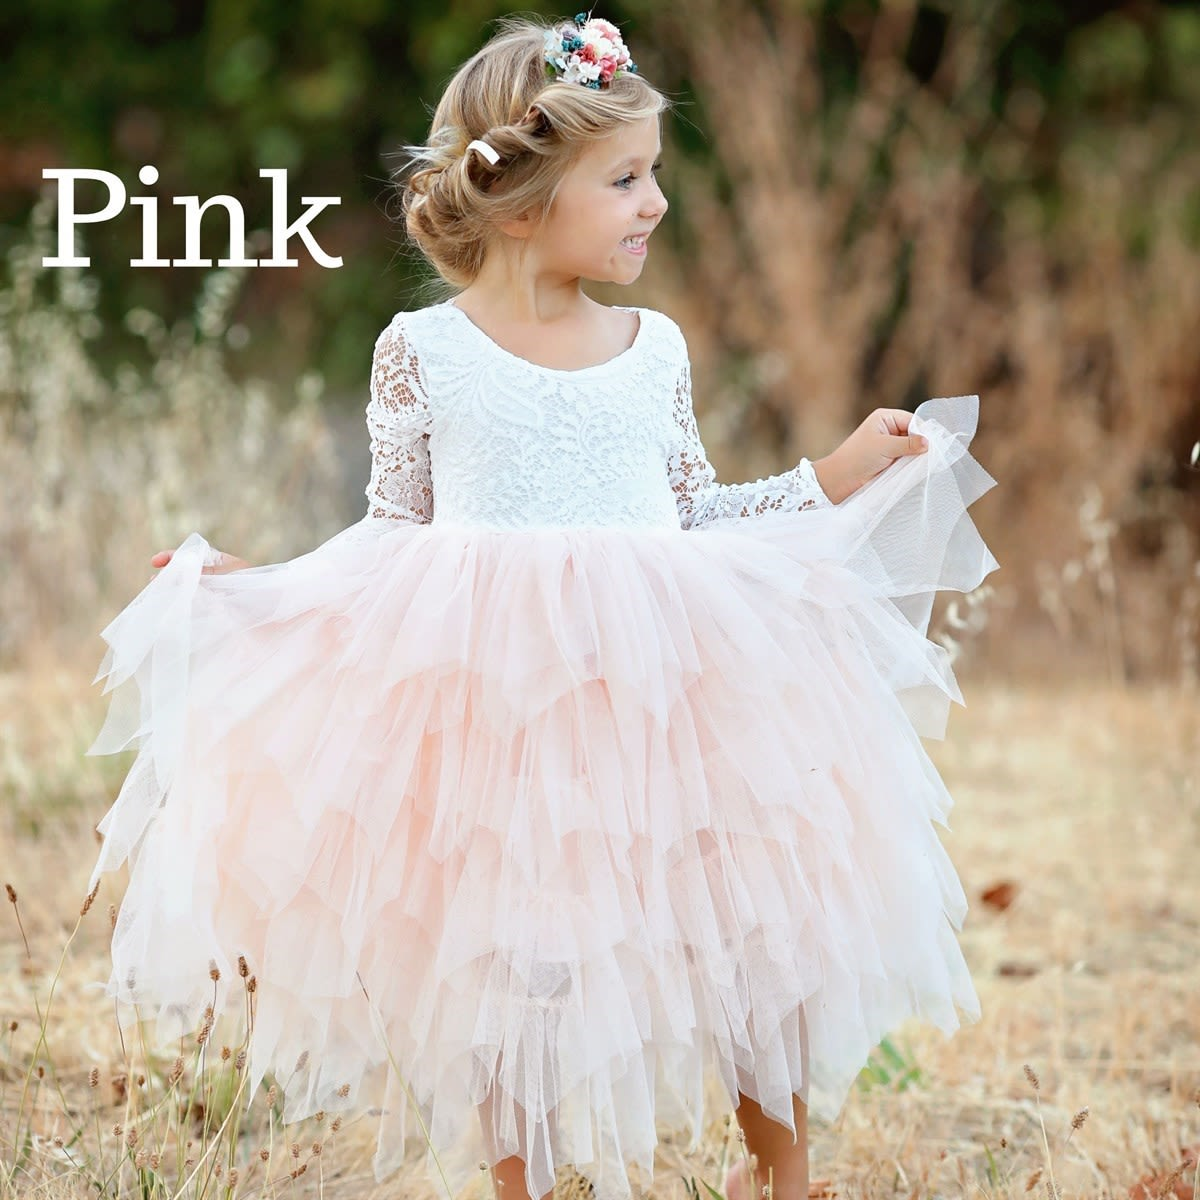 Girls Lace Tulle Dresses So Darling